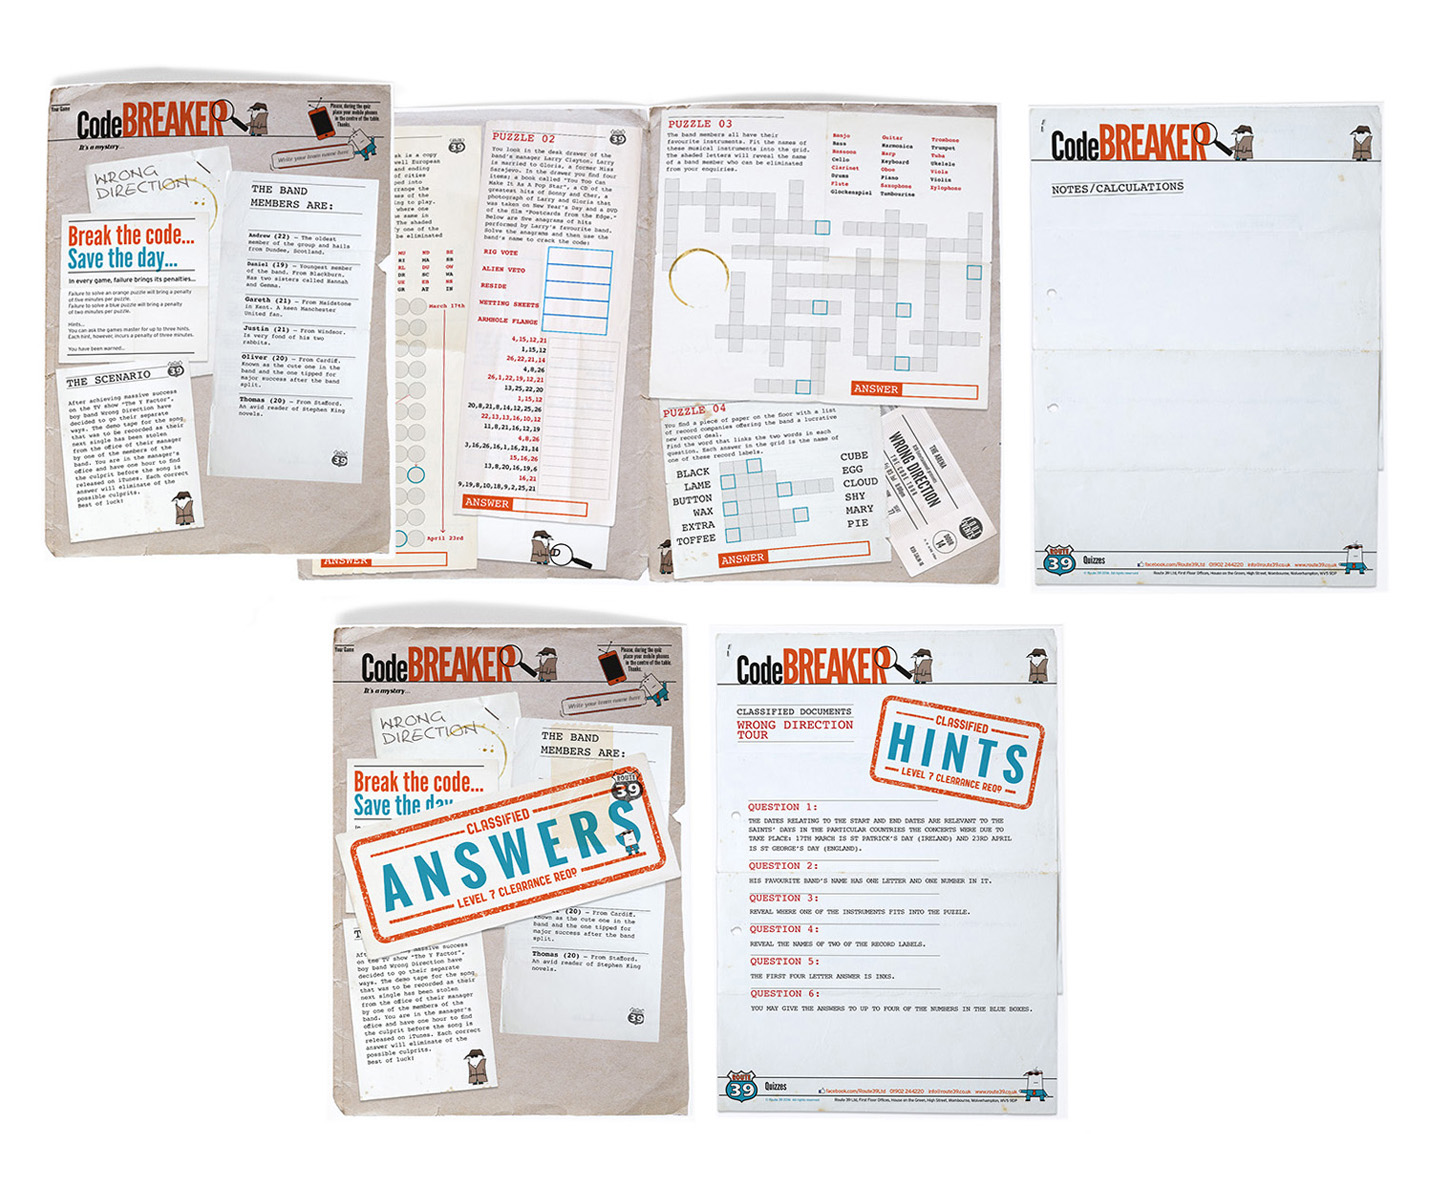 https://rusyndesign.co.uk/wp-content/uploads/2021/02/Route-39-Codebreaker-Game-and-answer-sheets.jpg